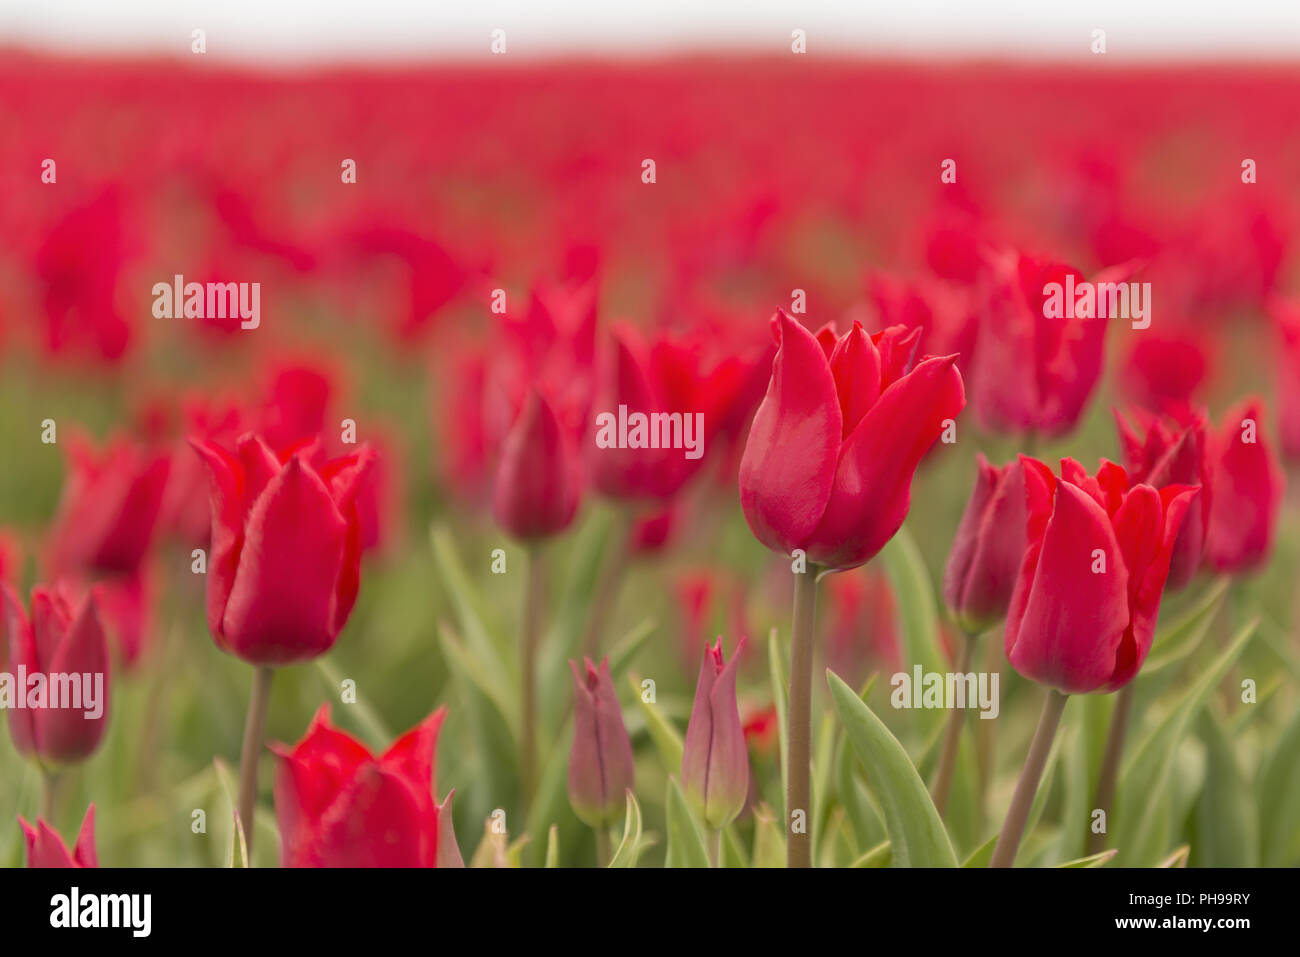 Red tulips as background picture Stock Photo